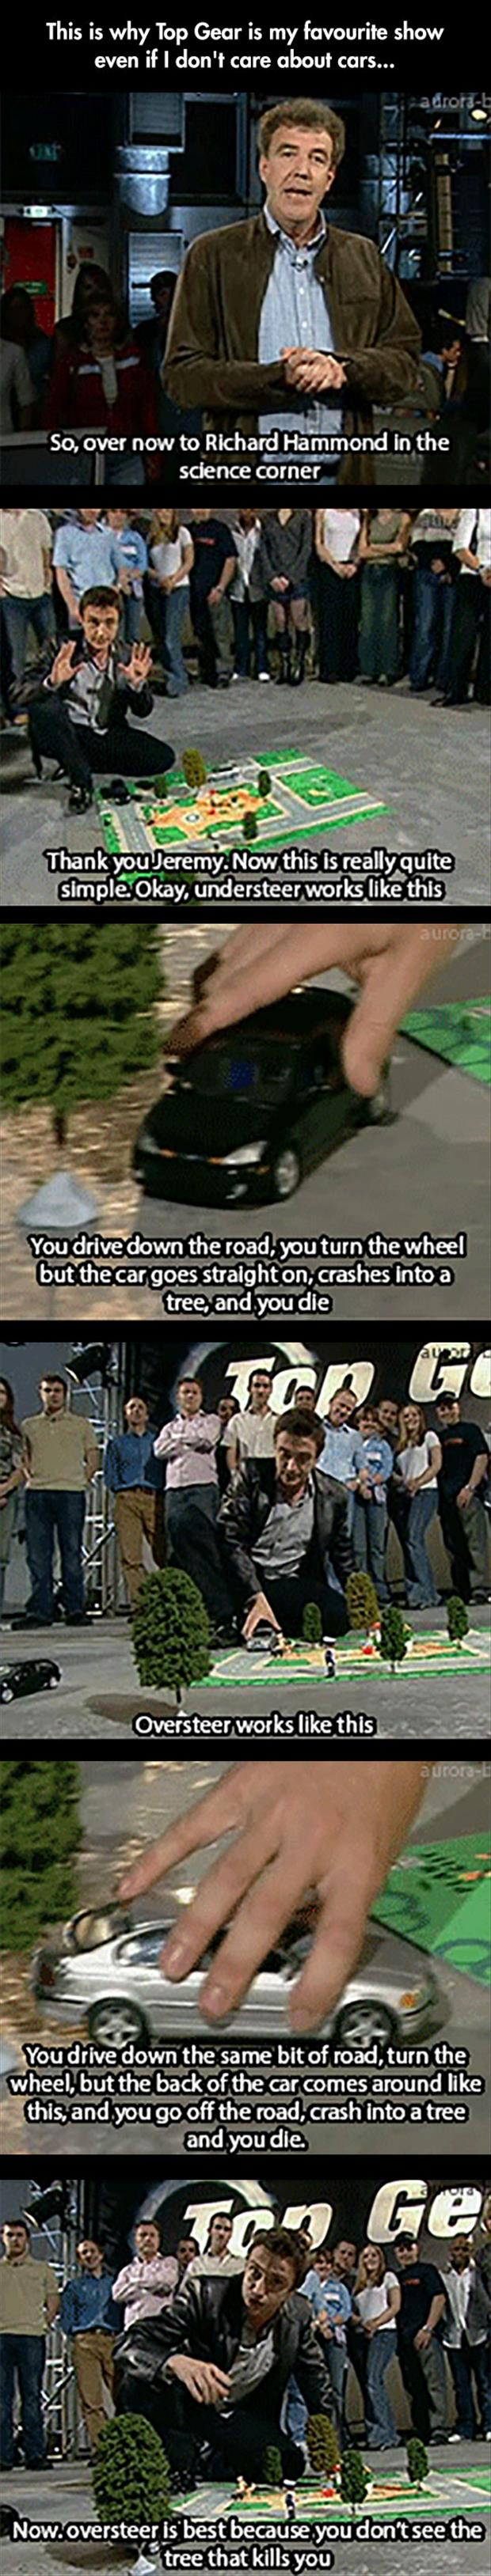 top gear is my favorite show